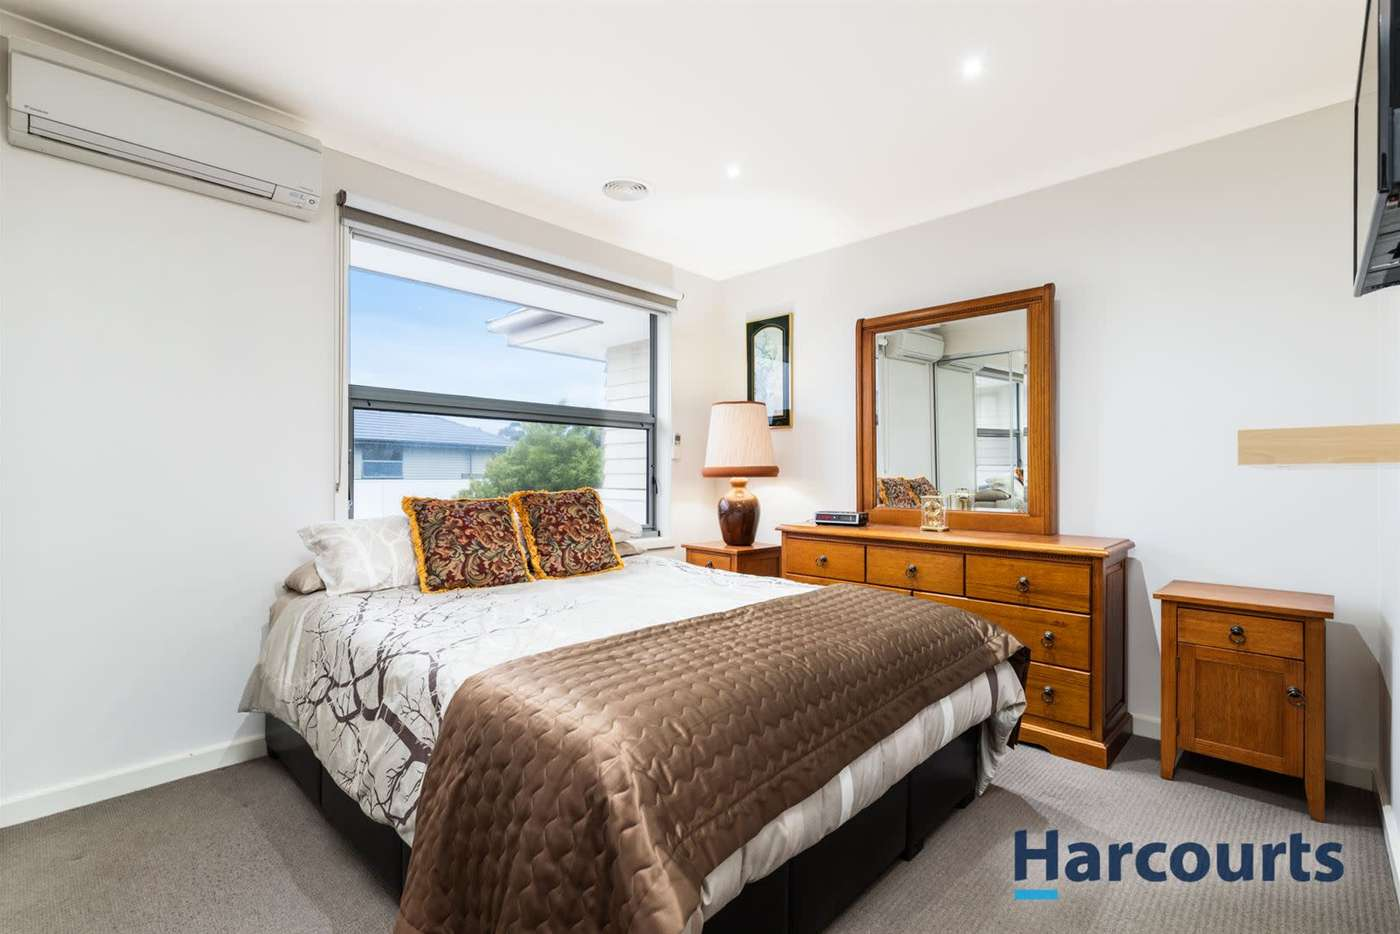 Sixth view of Homely house listing, 5 Tivoli Road, Mulgrave VIC 3170